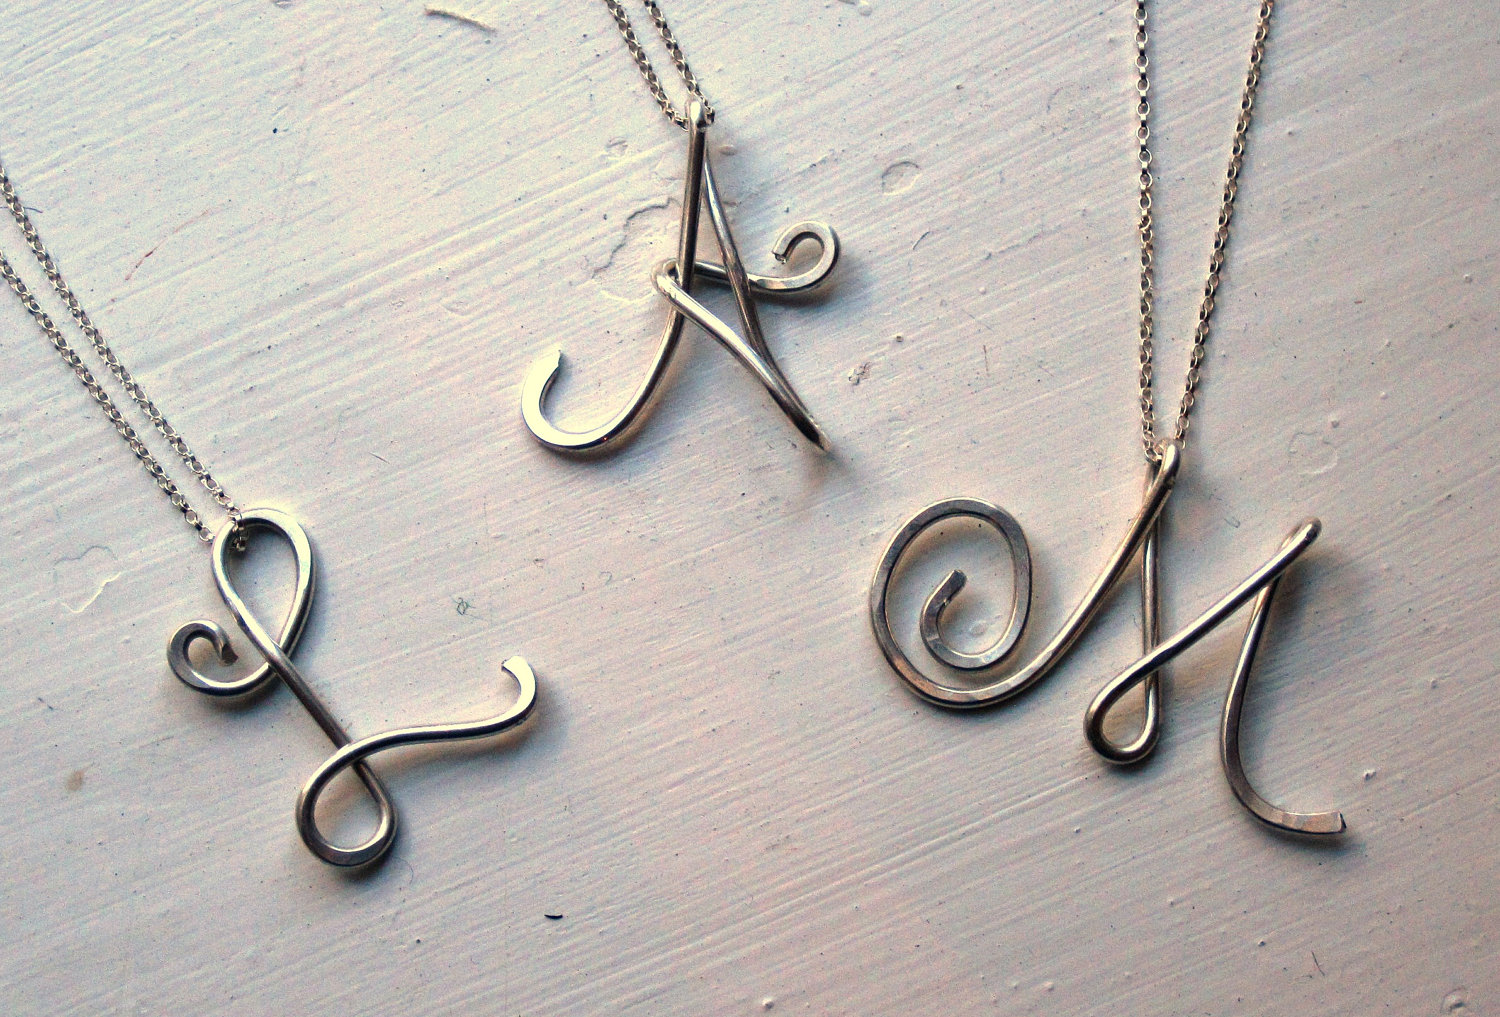 Wedding Gift Jewelry Suggestions : Unique Wedding Gifts for Bridesmaids Initial Jewelry Accessories 5 ...